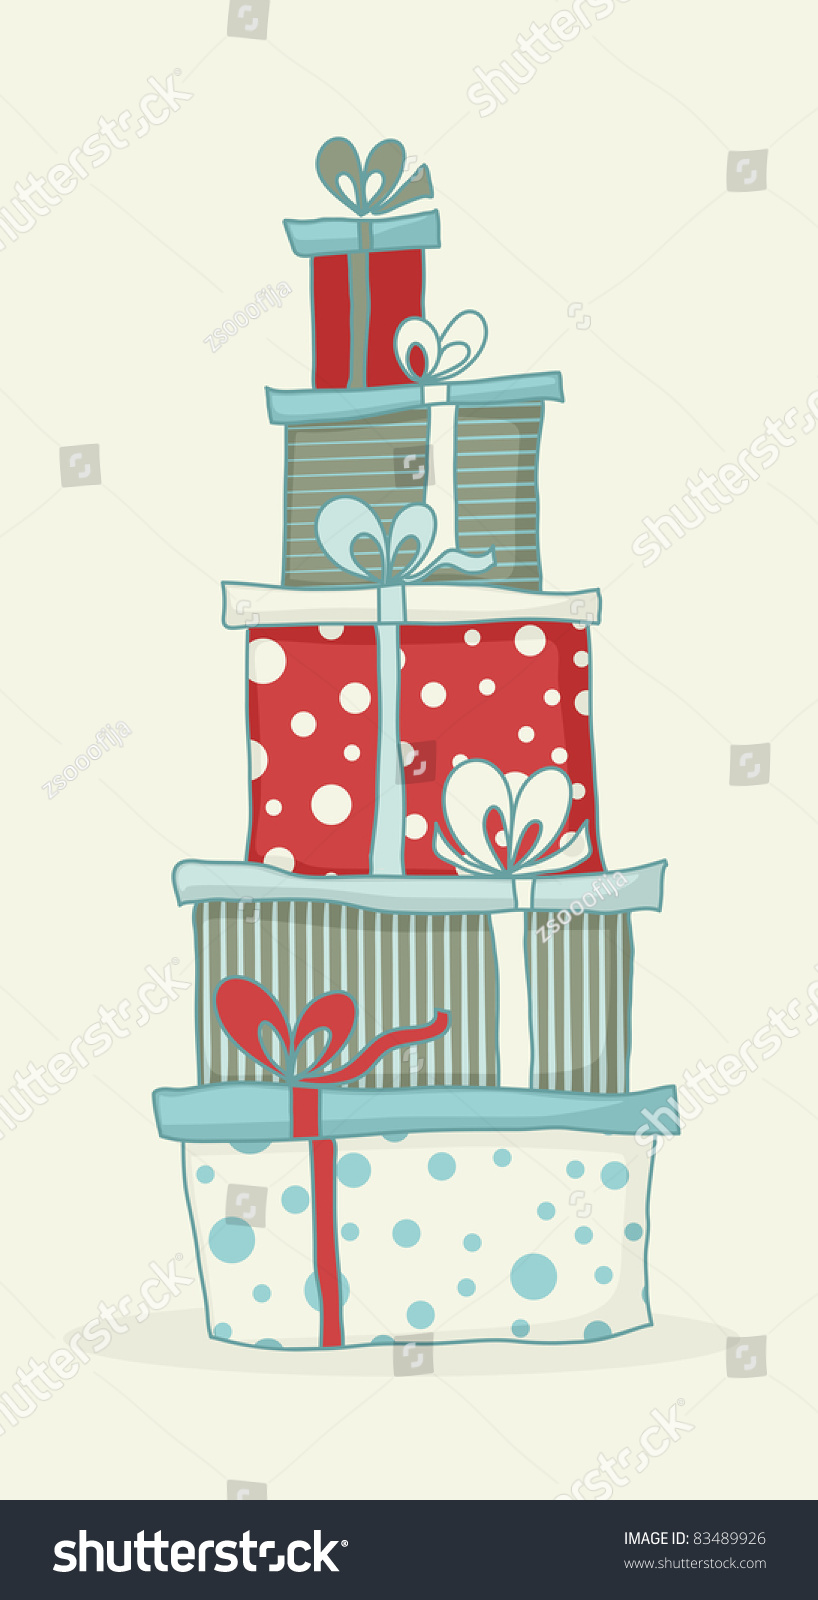 Colorful cartoon gift boxes for christmas or birthday card